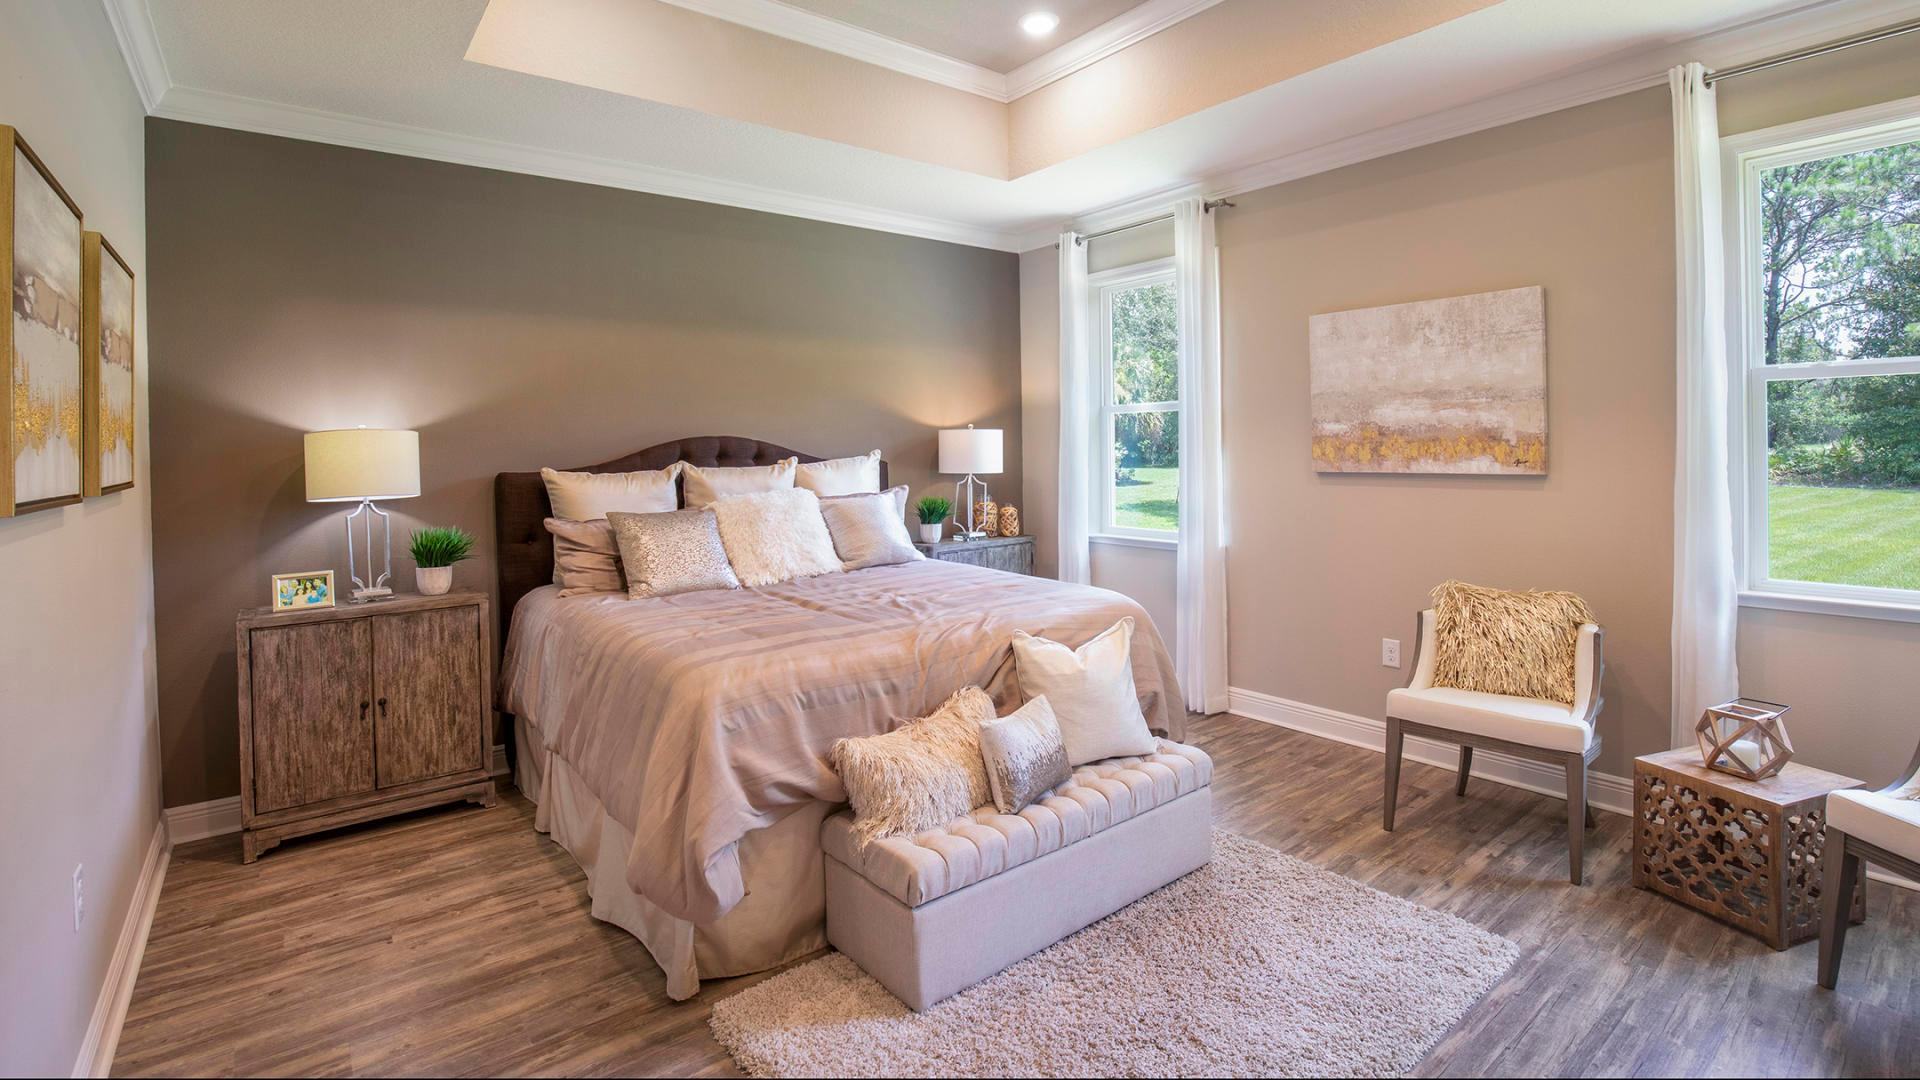 Bedroom featured in the Sienna By Maronda Homes in Punta Gorda, FL